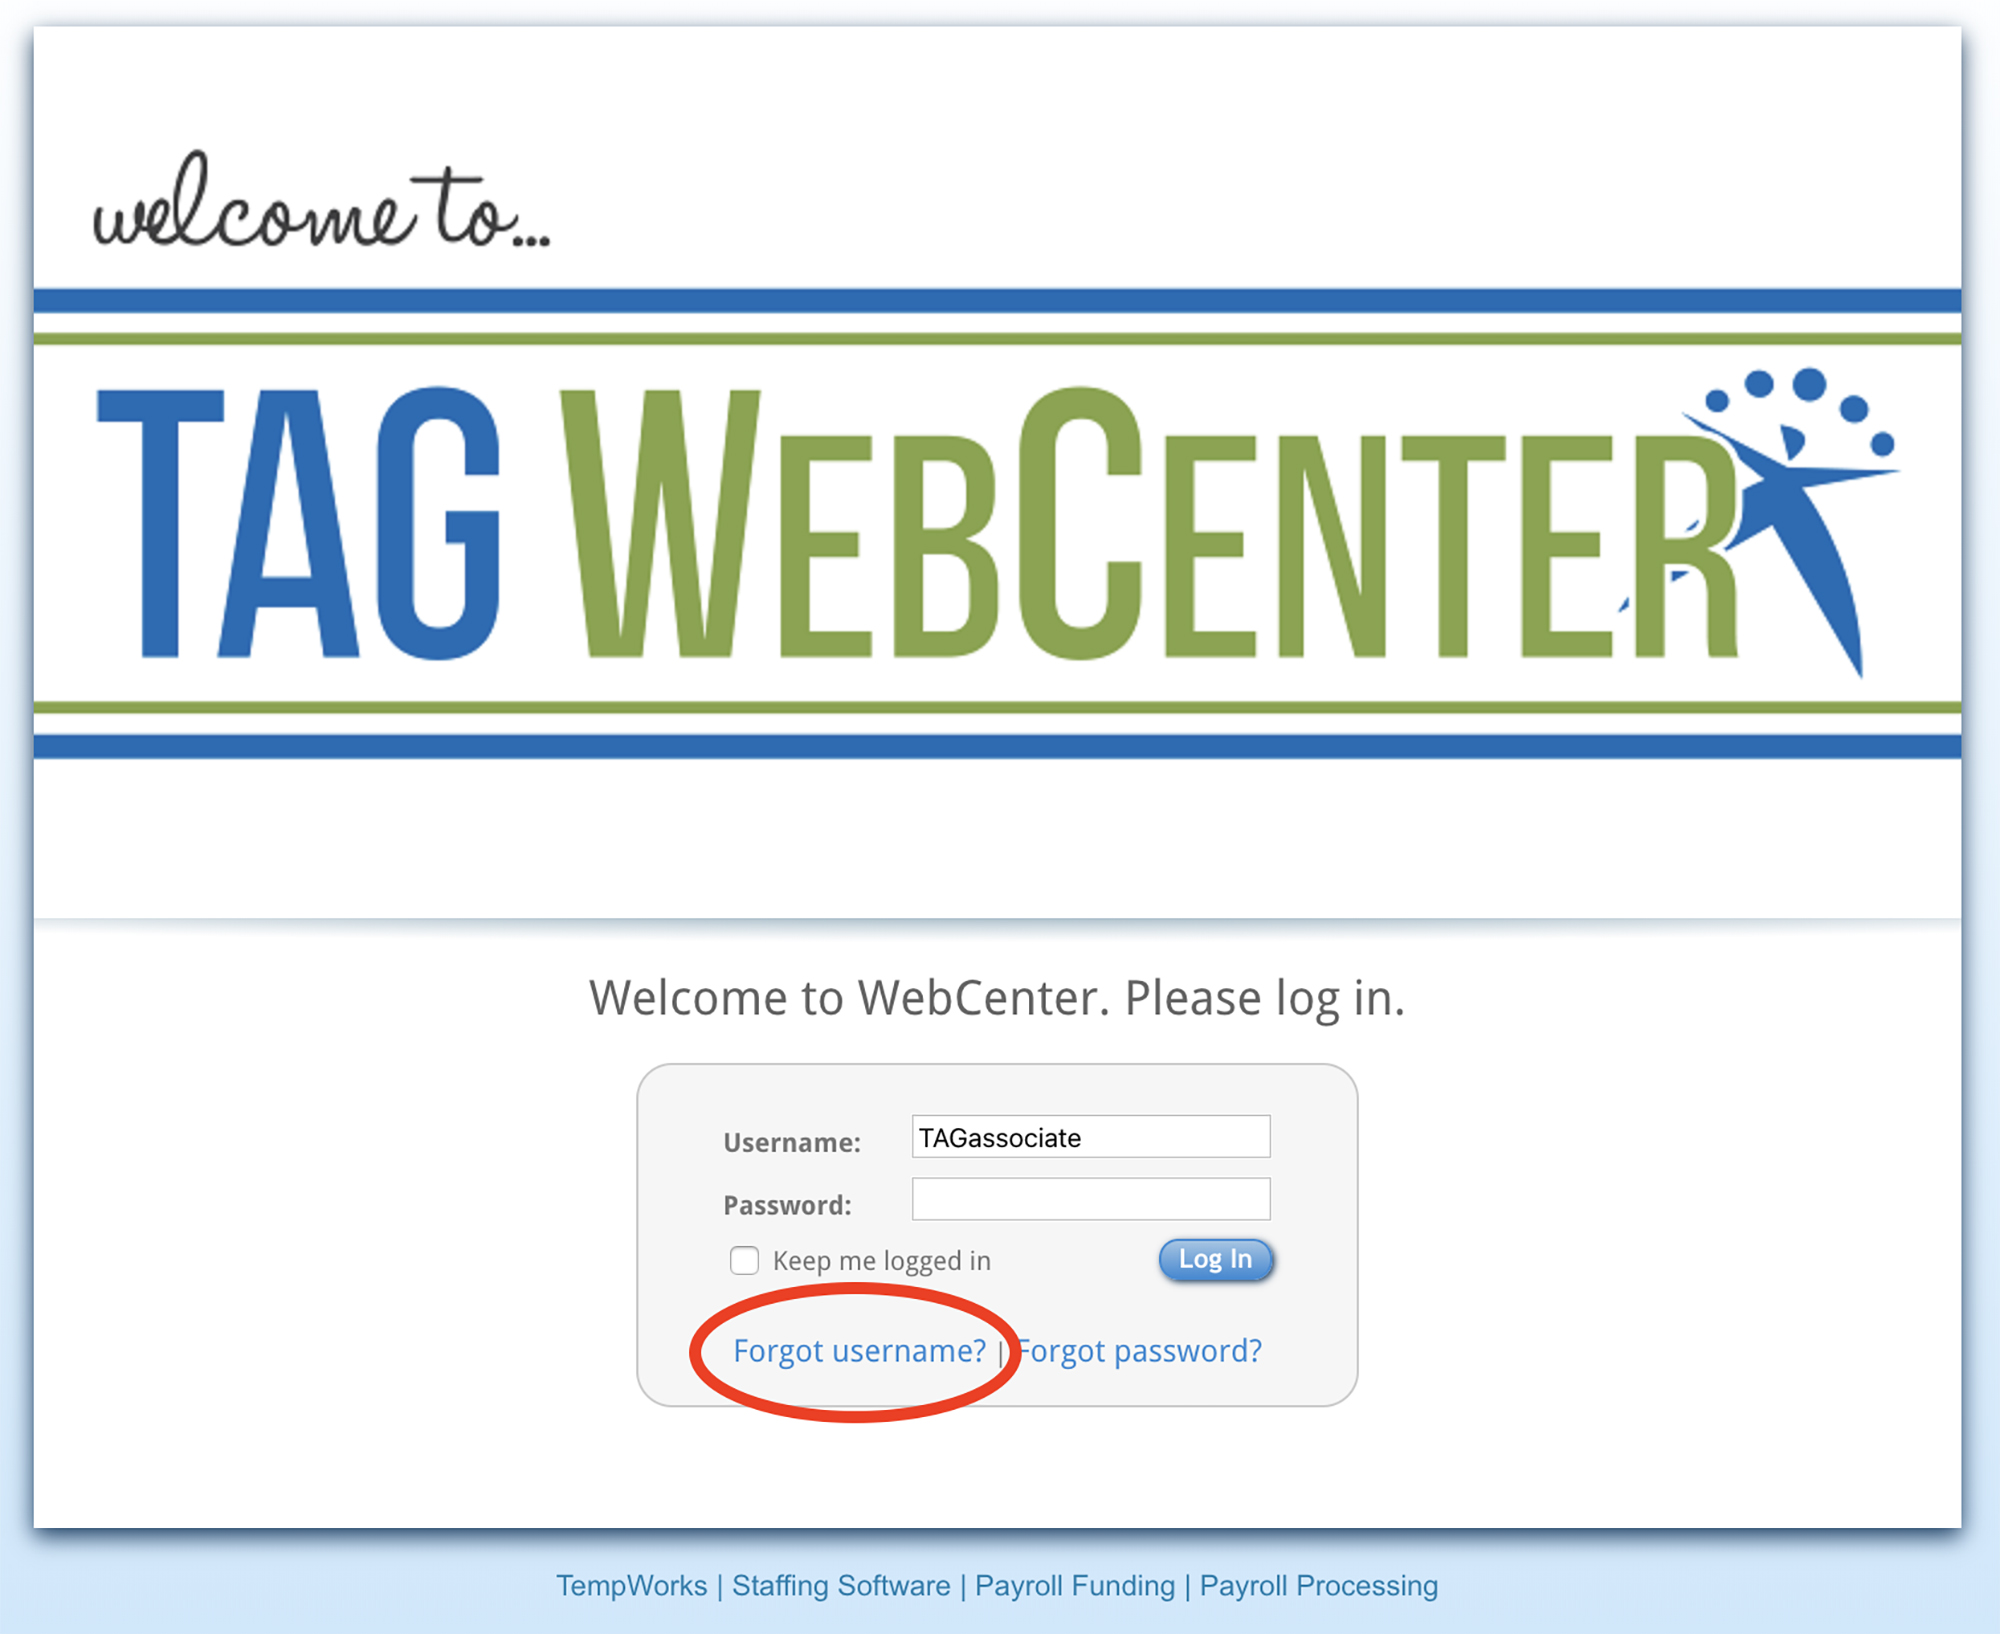 TAG WebCenter Welcome